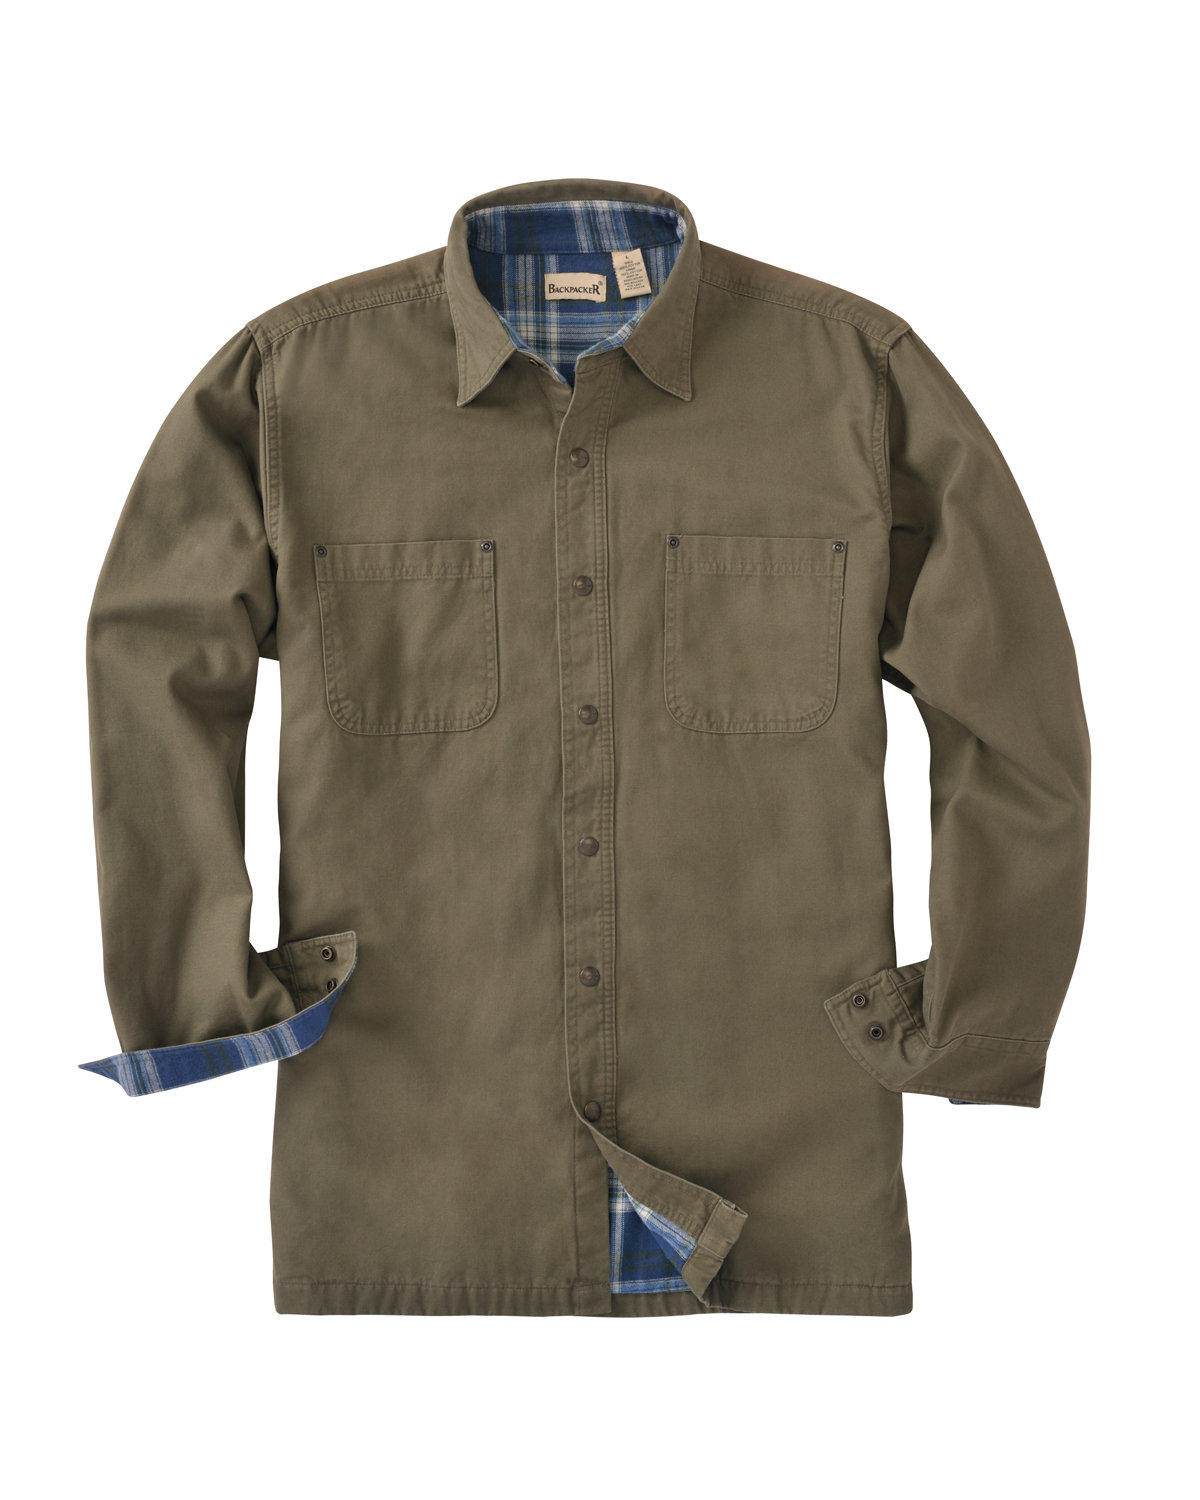 Backpacker Men's Canvas Shirt Jacket with Flannel Lining MOSS GREEN